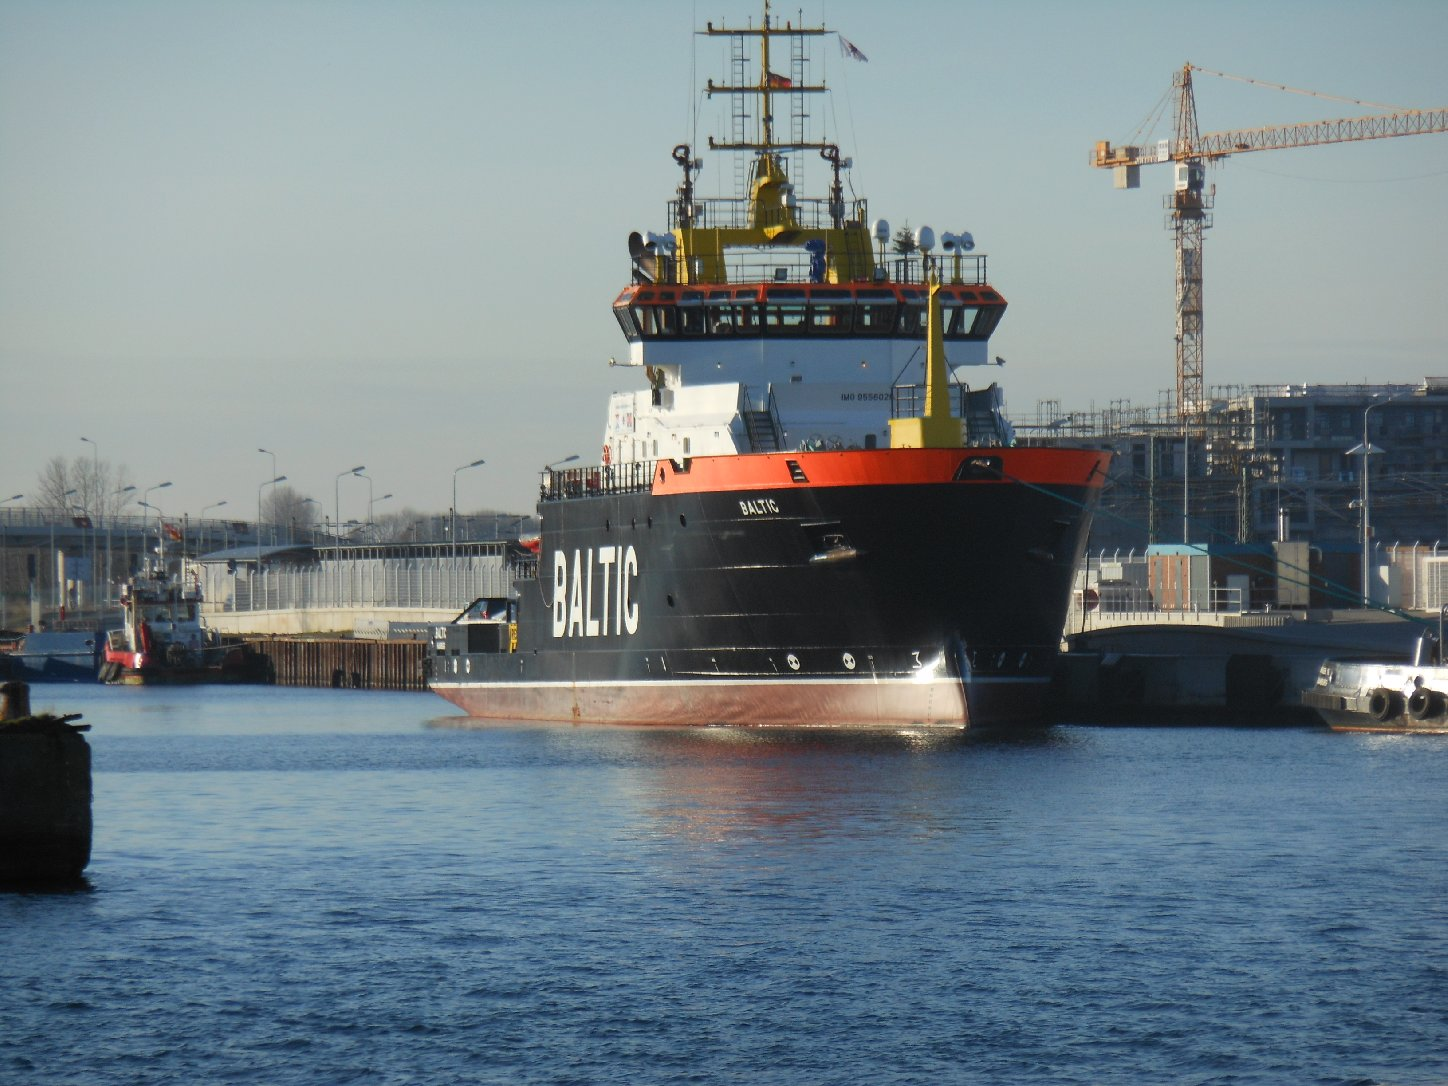 MS Baltic